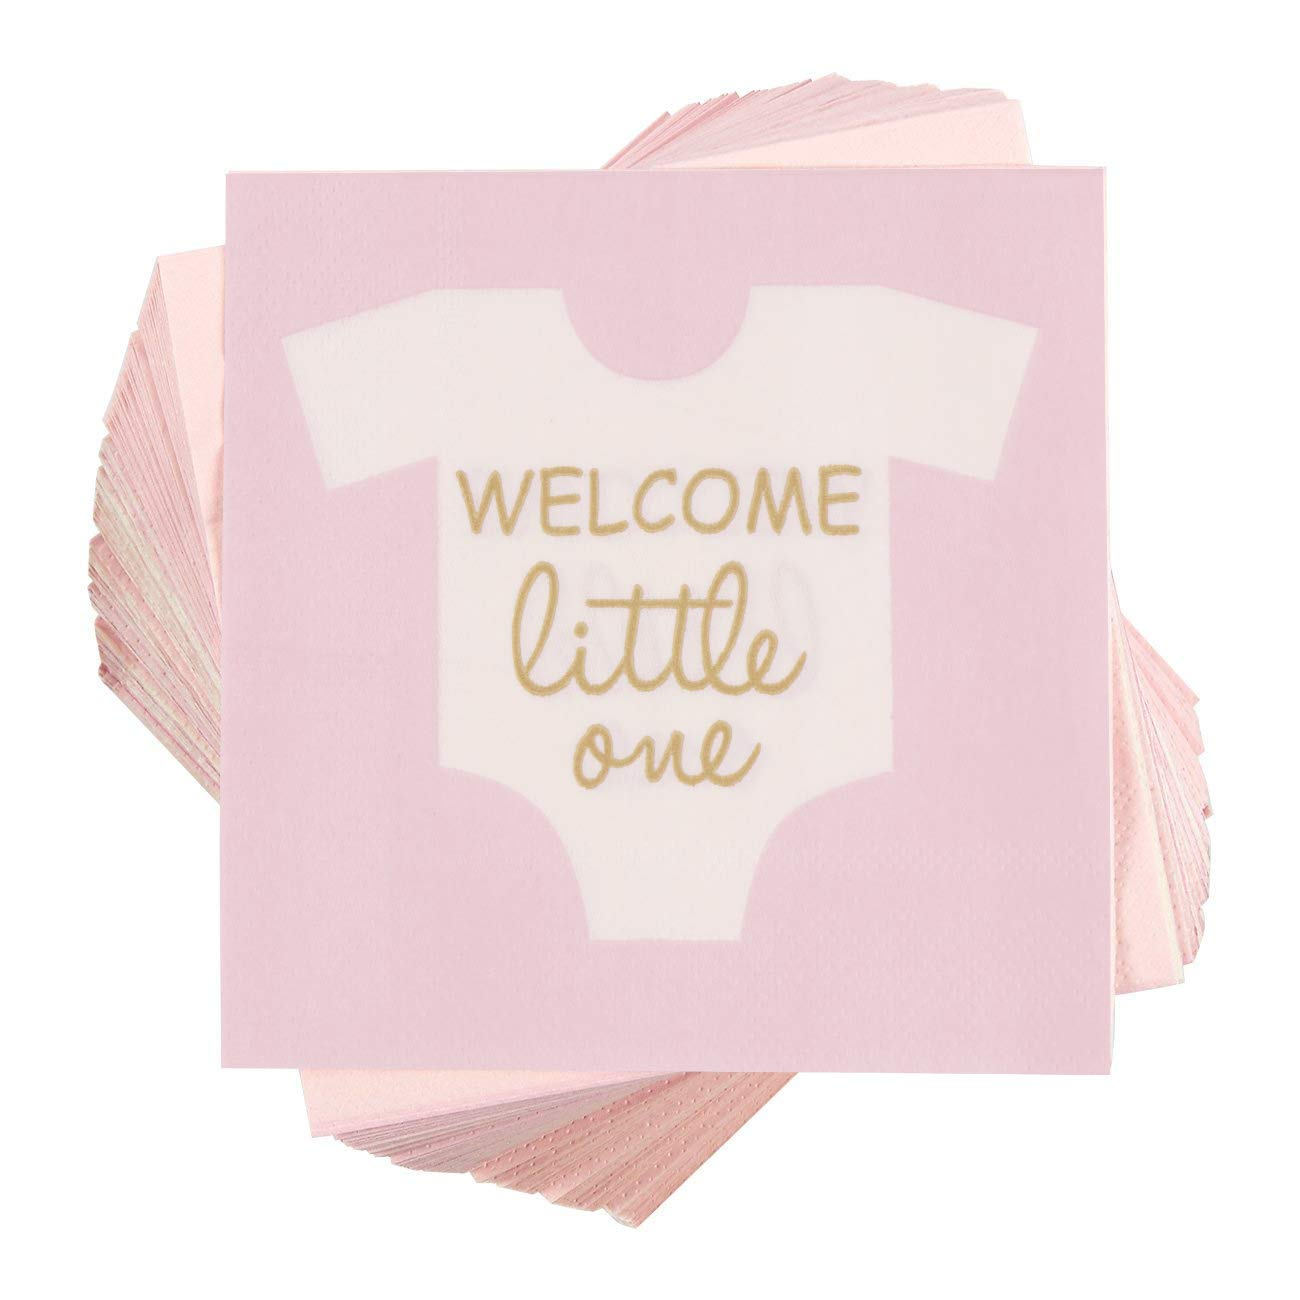 Baby Shower Cocktail Napkins - 100 Pack Welcome Little One Disposable Paper Party Napkins, Perfect for Girl Baby Shower Decorations and Gender Reveal Party Supplies, 5 x 5 inches Folded, Pink